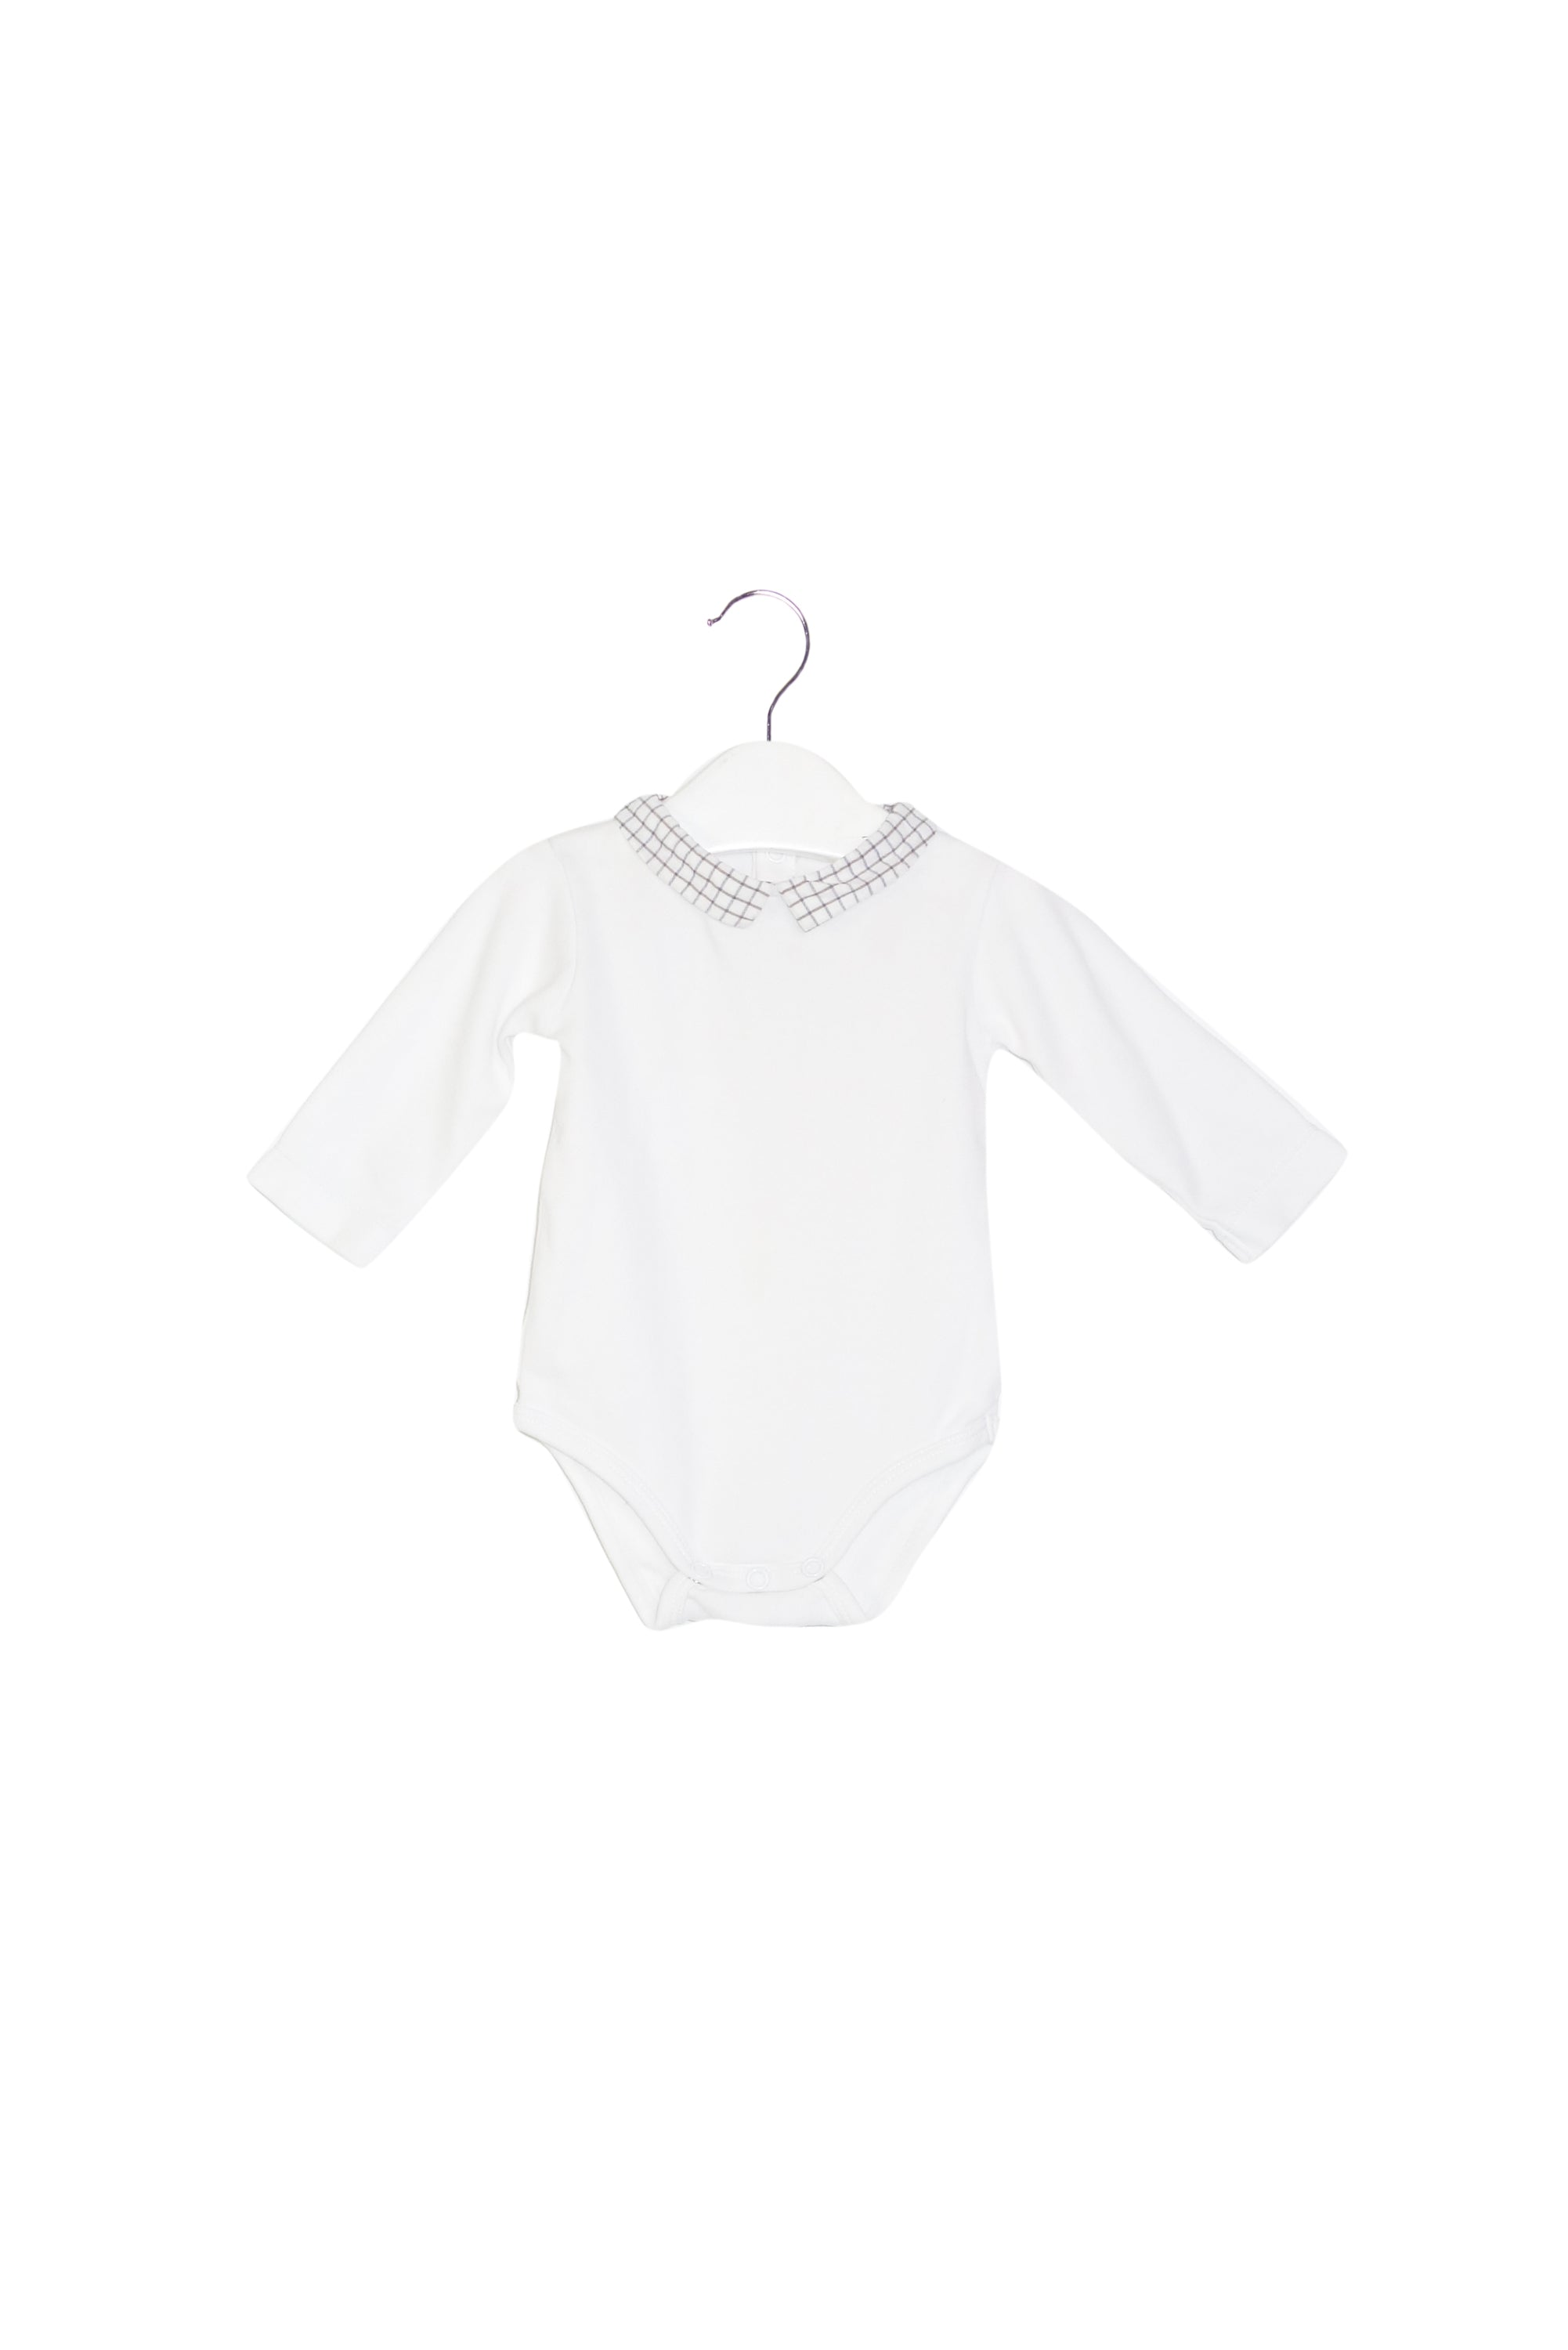 10012916 Jacadi Baby ~ Bodysuit 6M at Retykle